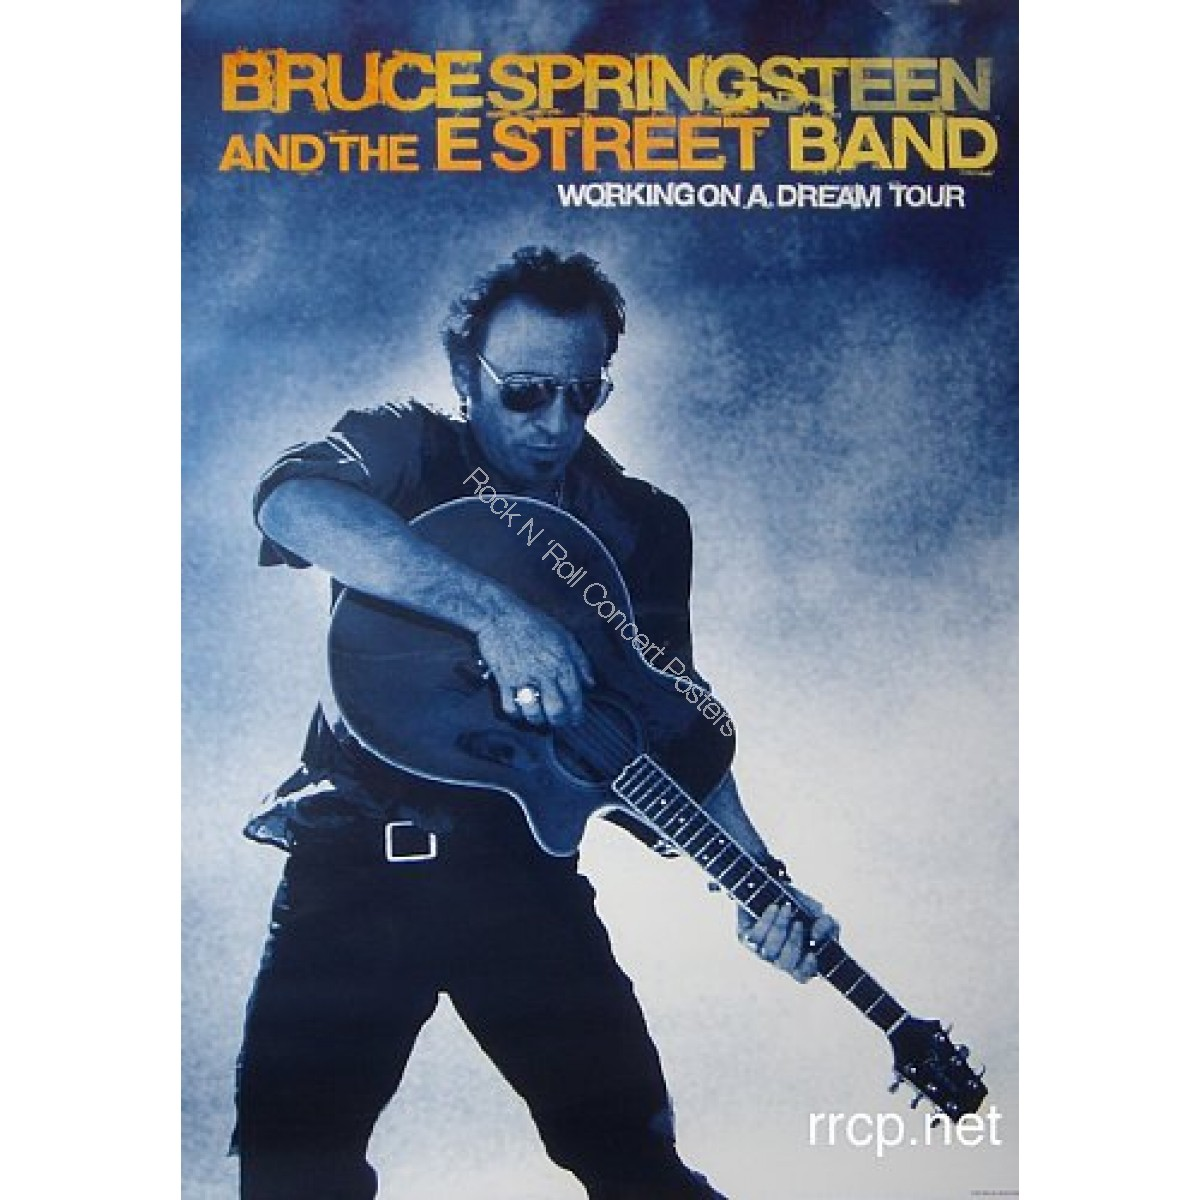 Bruce Springsteen Working On A Dream Tour Poster Original 1st printing 2009